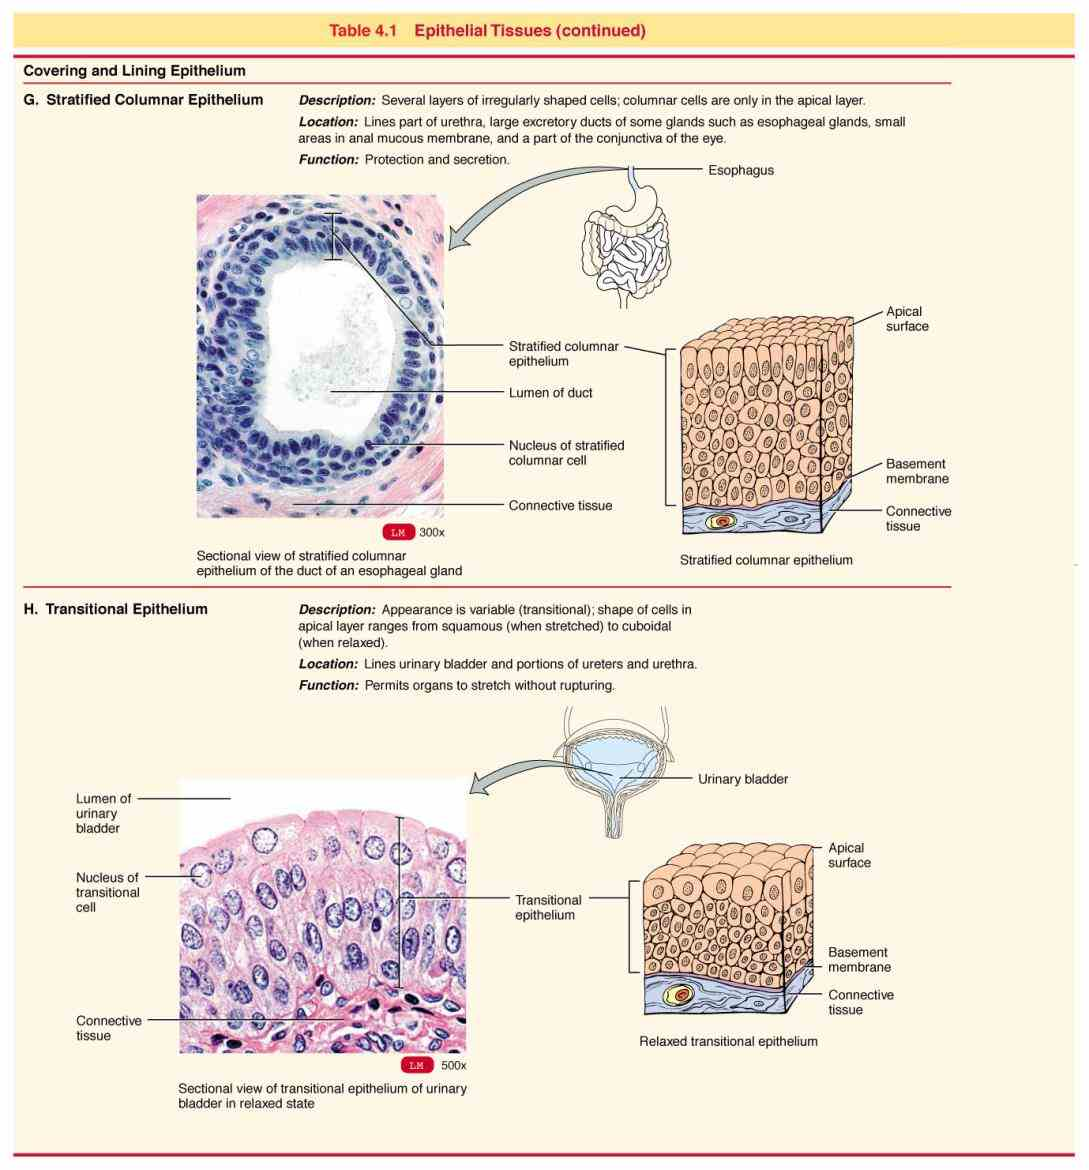 to cover and protect lining surfaces & cavities barriers immune function transport absorption intestine; tubules of de Glandular Epithelium